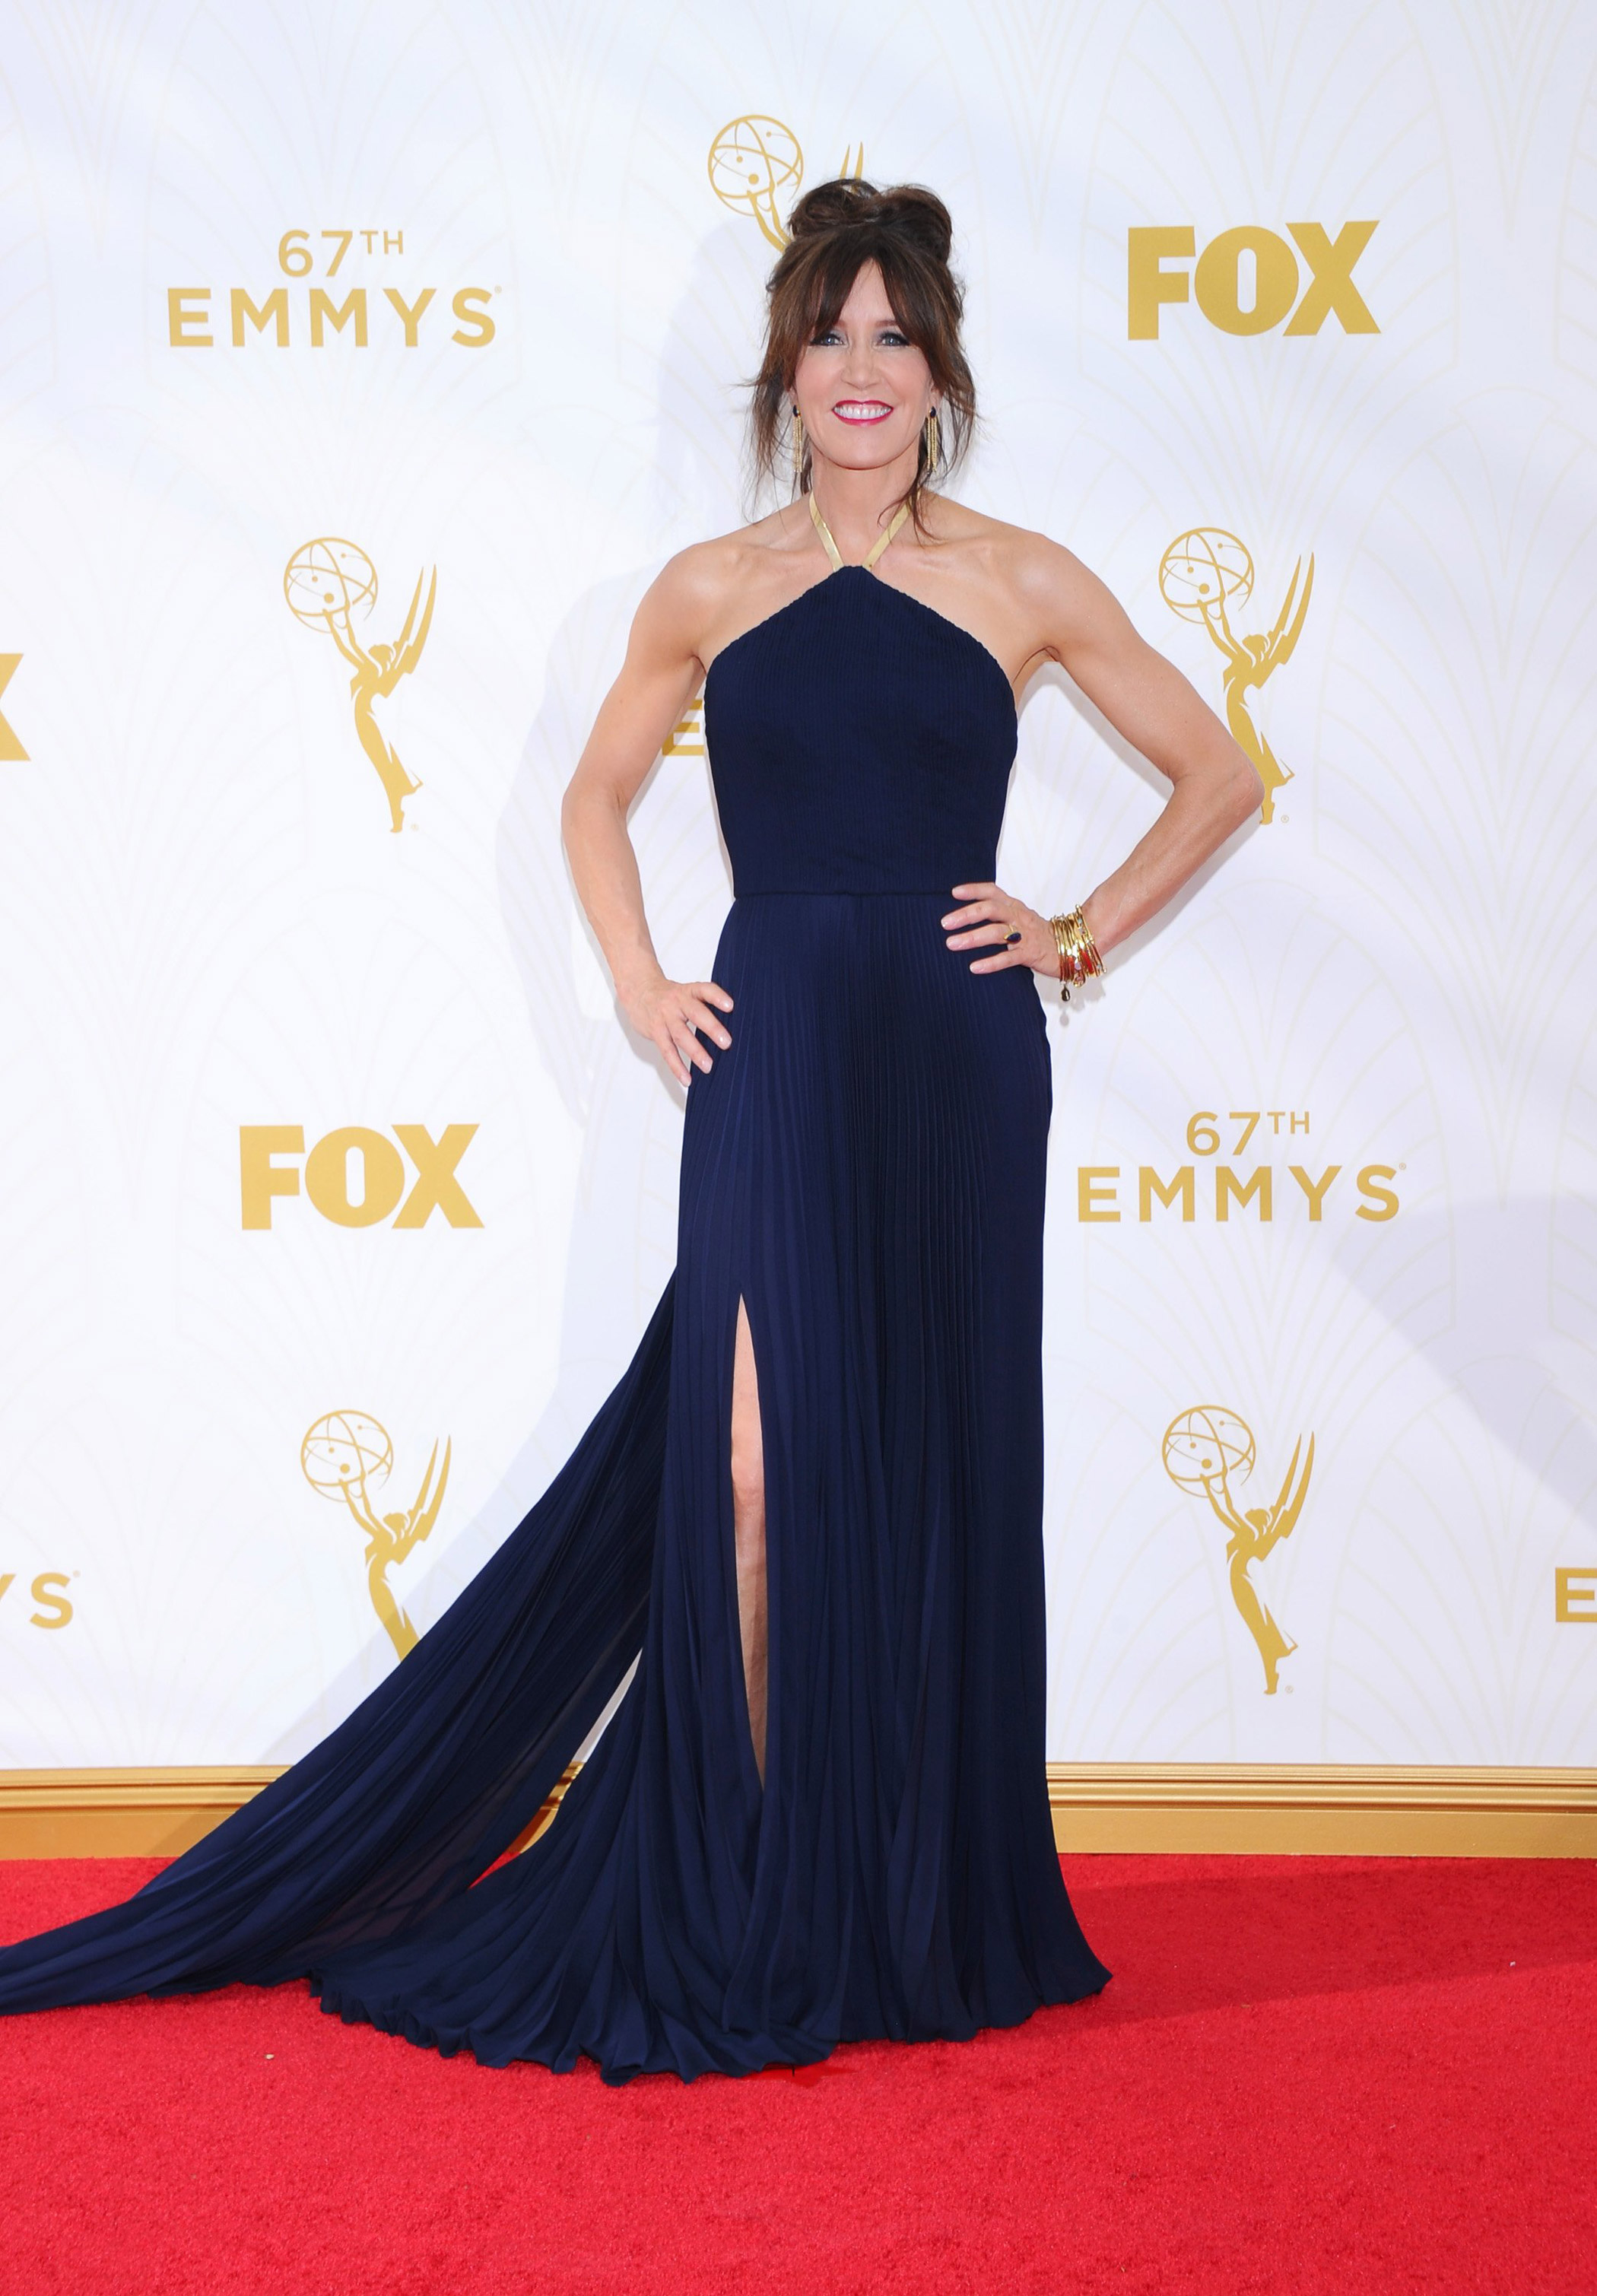 Felicity Huffman at the 67th Emmy Award on Sept. 20, 2015 in Los Angeles.